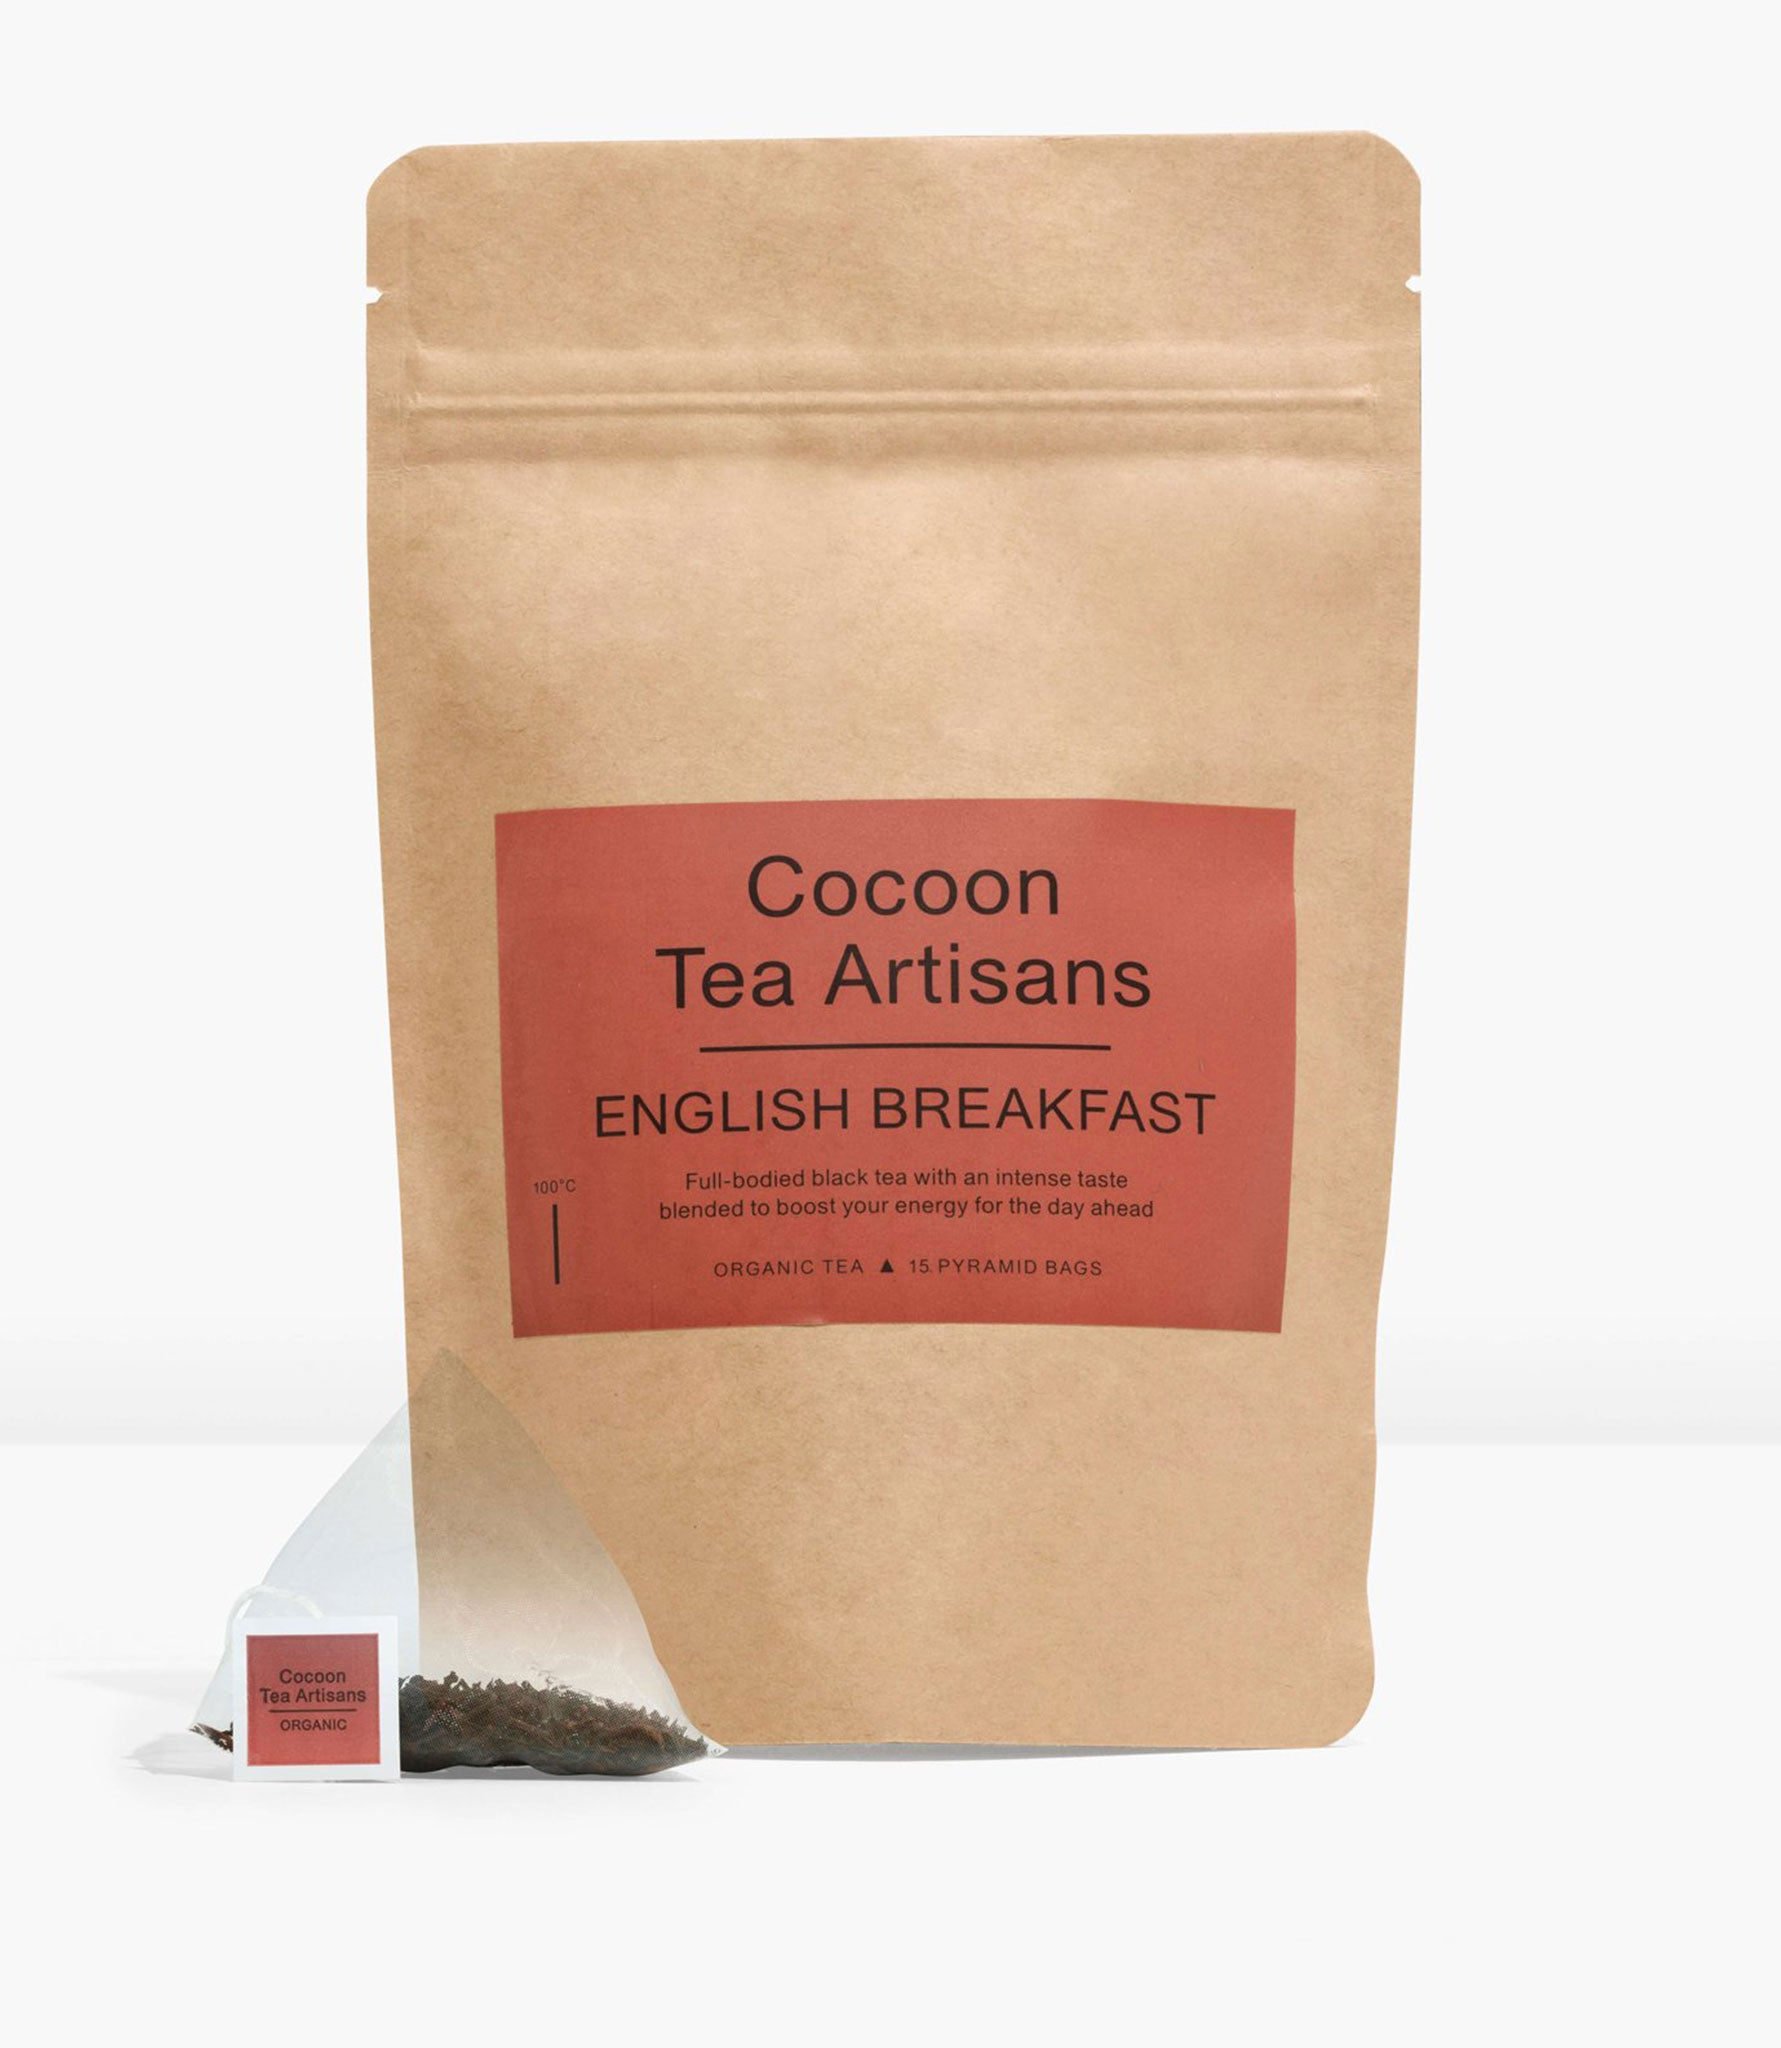 Refill Bag with 15 English Breakfast pyramid tea bags